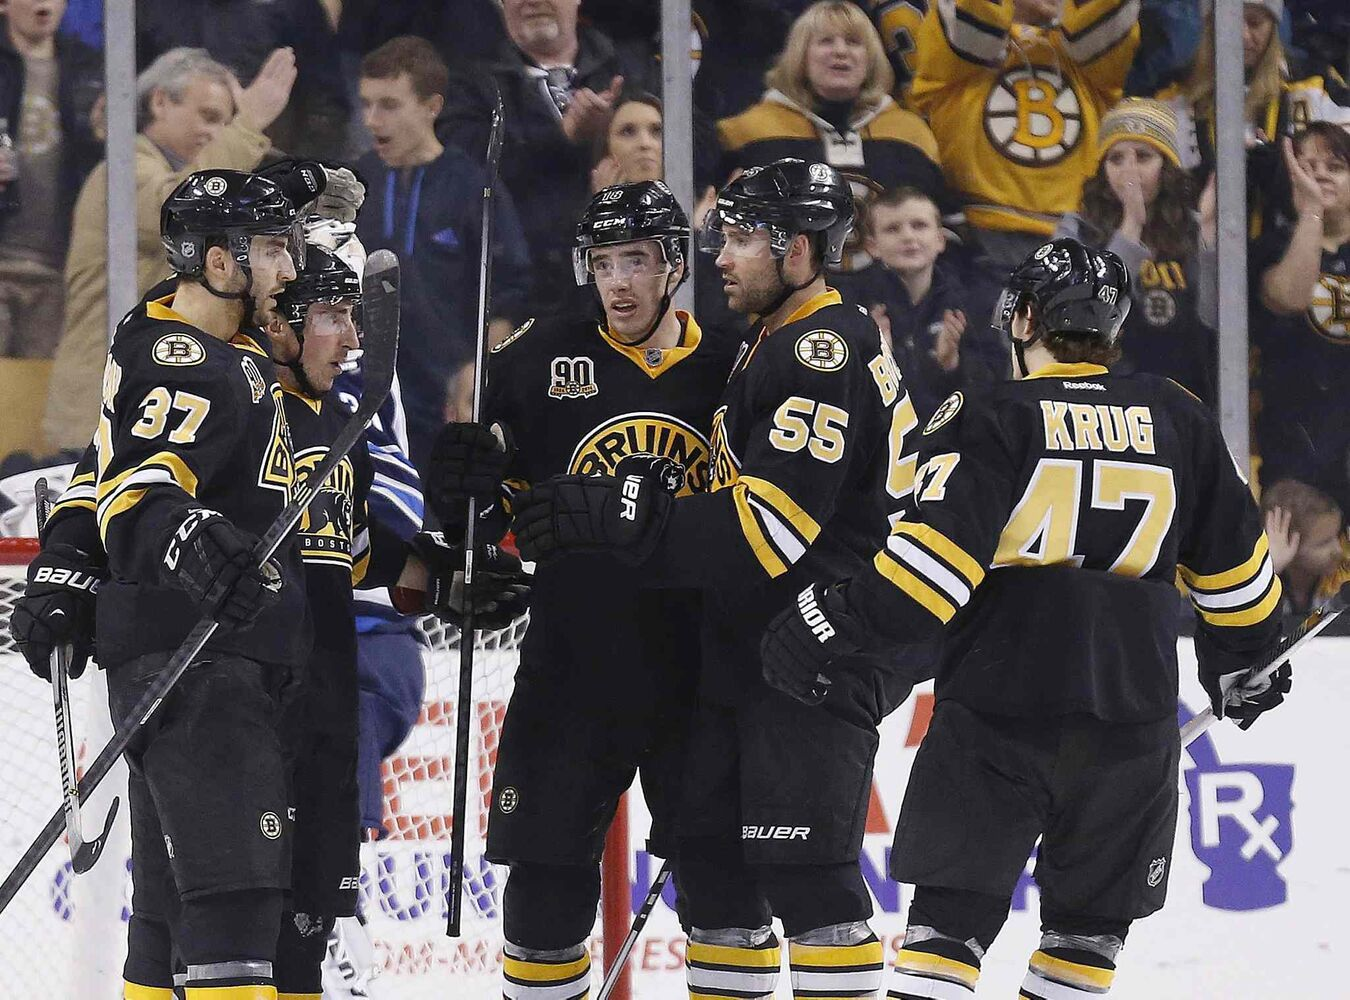 Boston Bruins' Reilly Smith, centre, celebrates his goal with teammates Patrice Bergeron (37), Brad Marchand (63), Johnny Boychuk (55) and Torey Krug (47) in the third period Saturday. The Bruins won the game 4-1. (Michael Dwyer / The Associated Press)